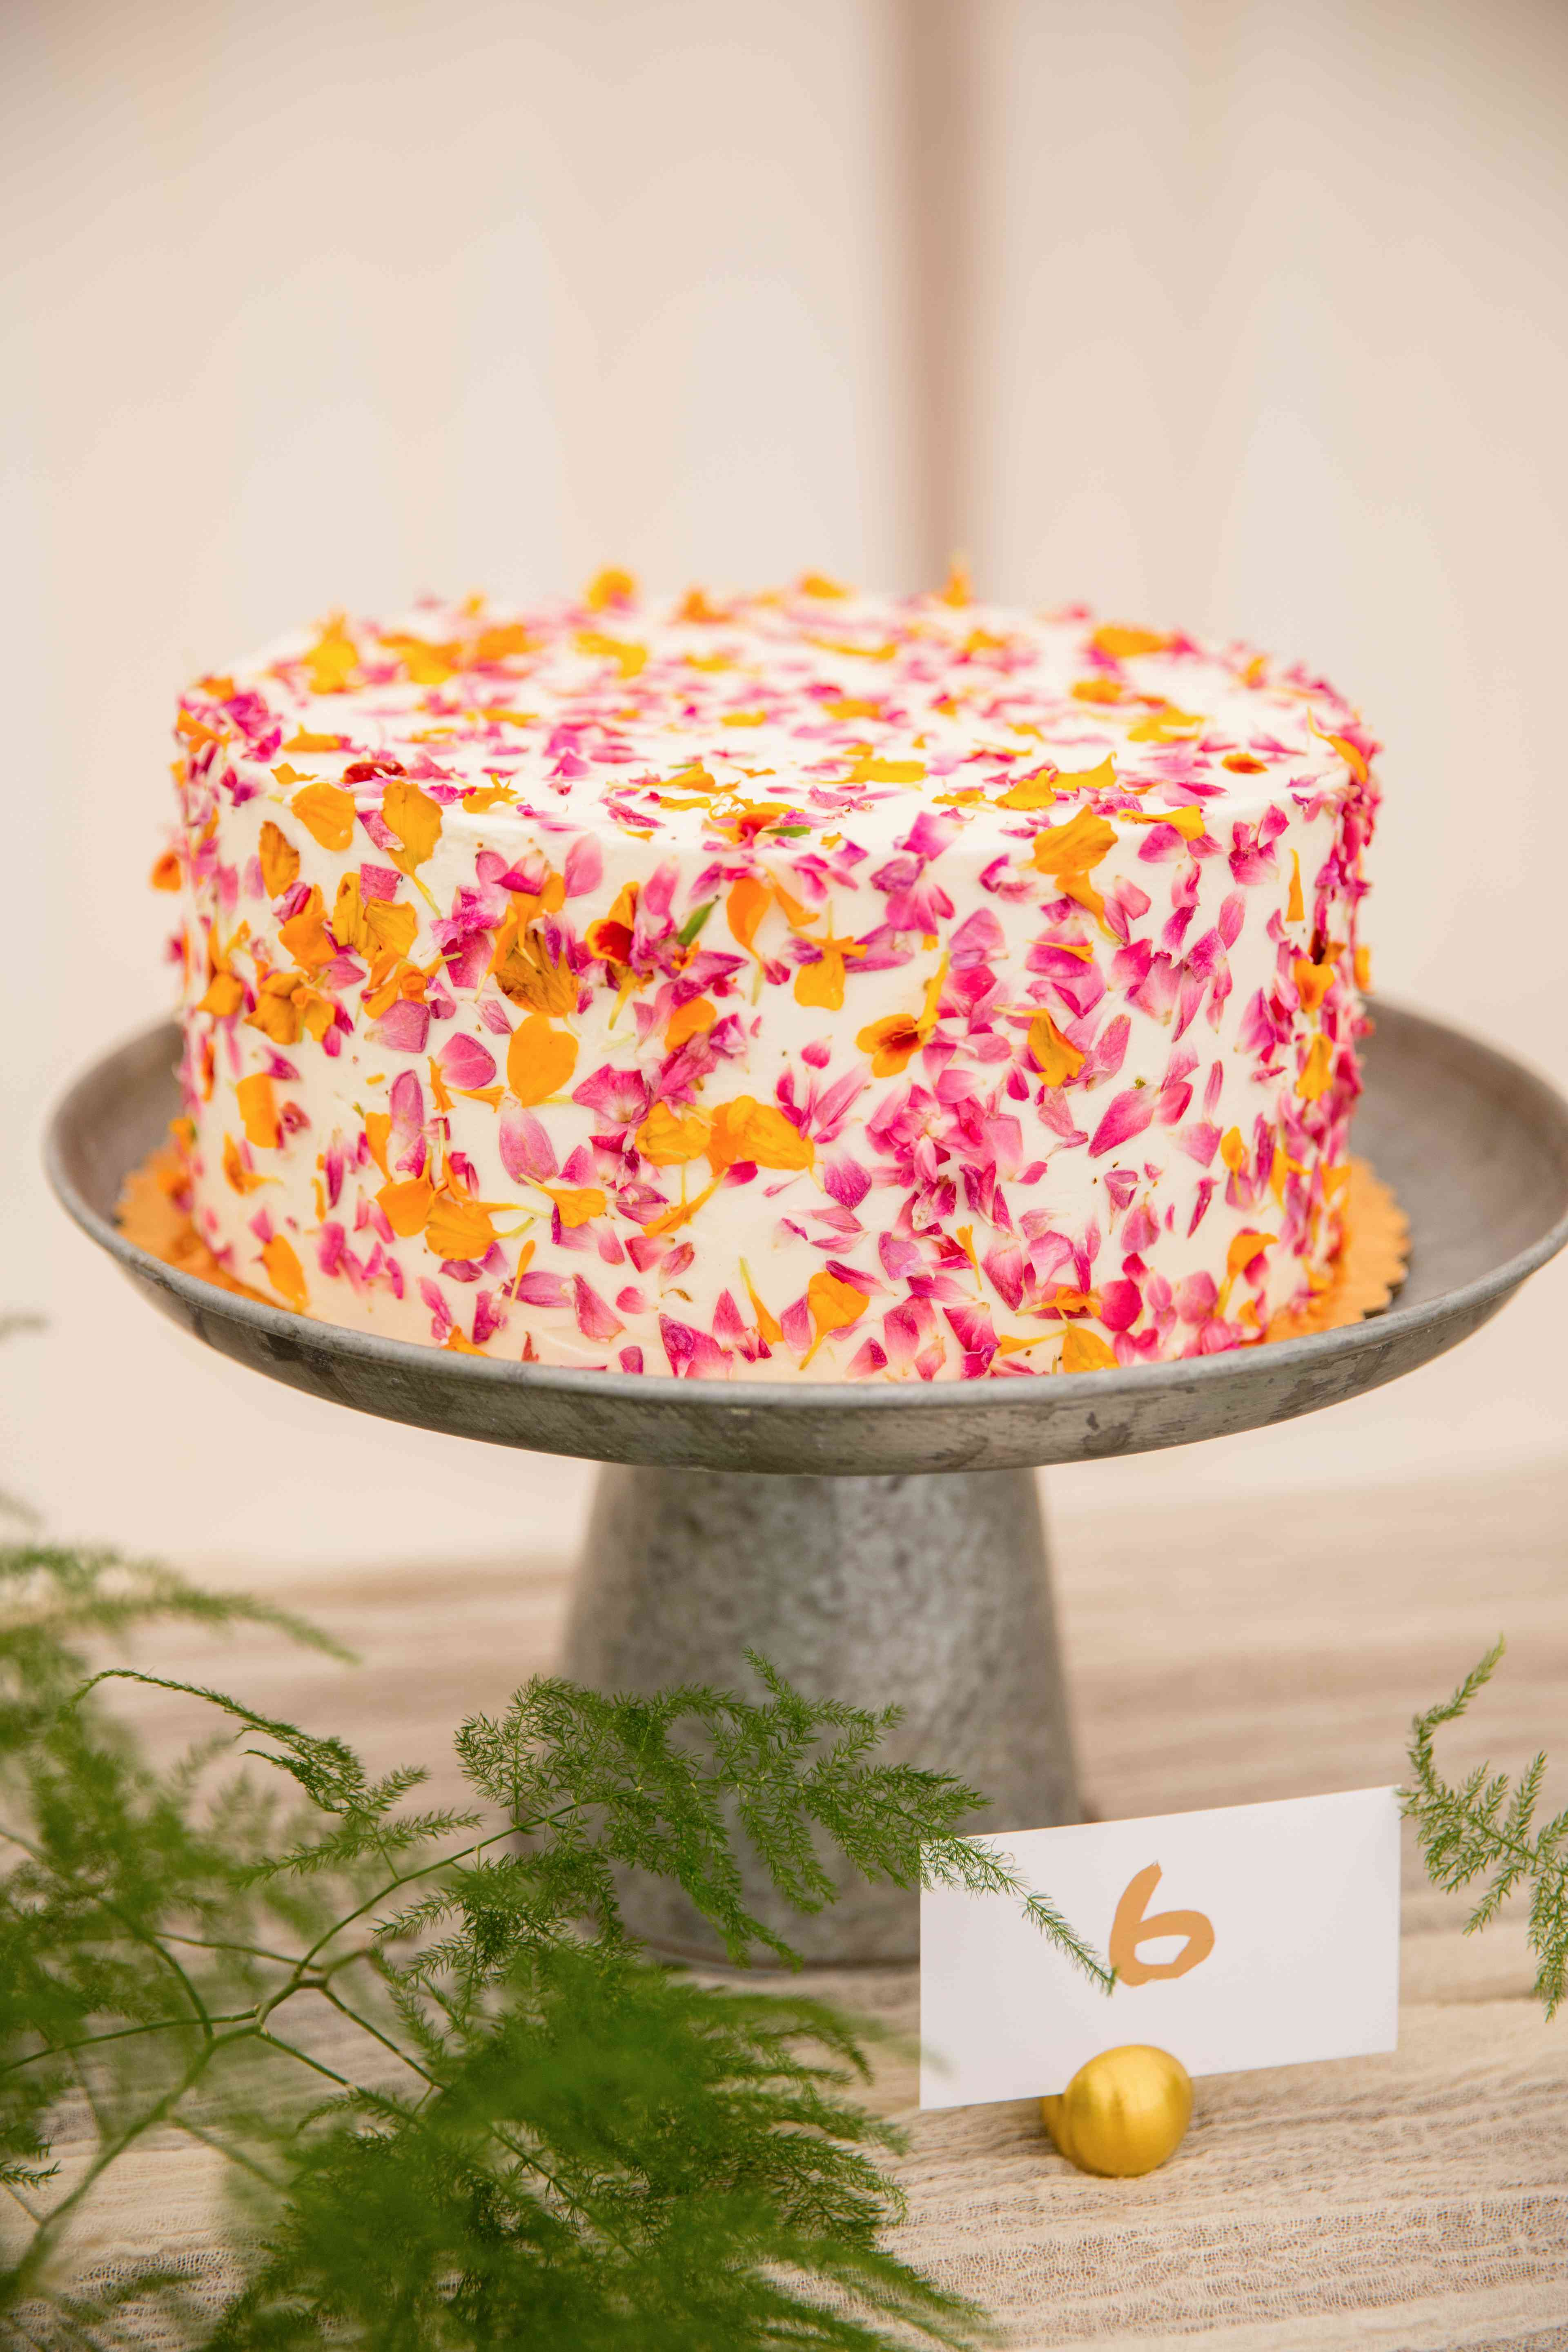 One-tiered white cake decorated with pink and orange edible flowers